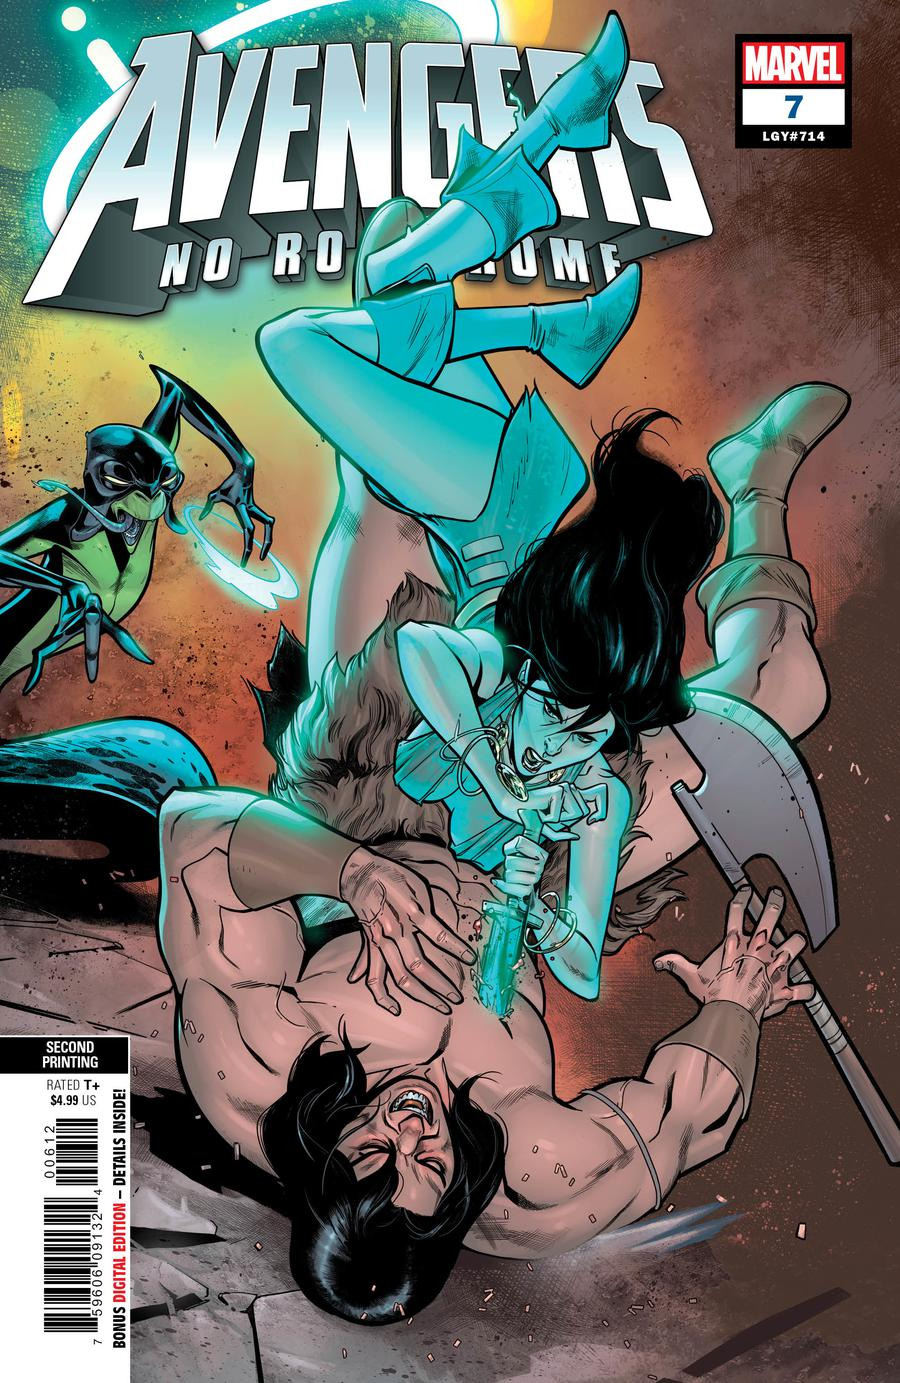 Avengers No Road Home #7 Cover C 2nd Ptg Variant Paco Medina Cover